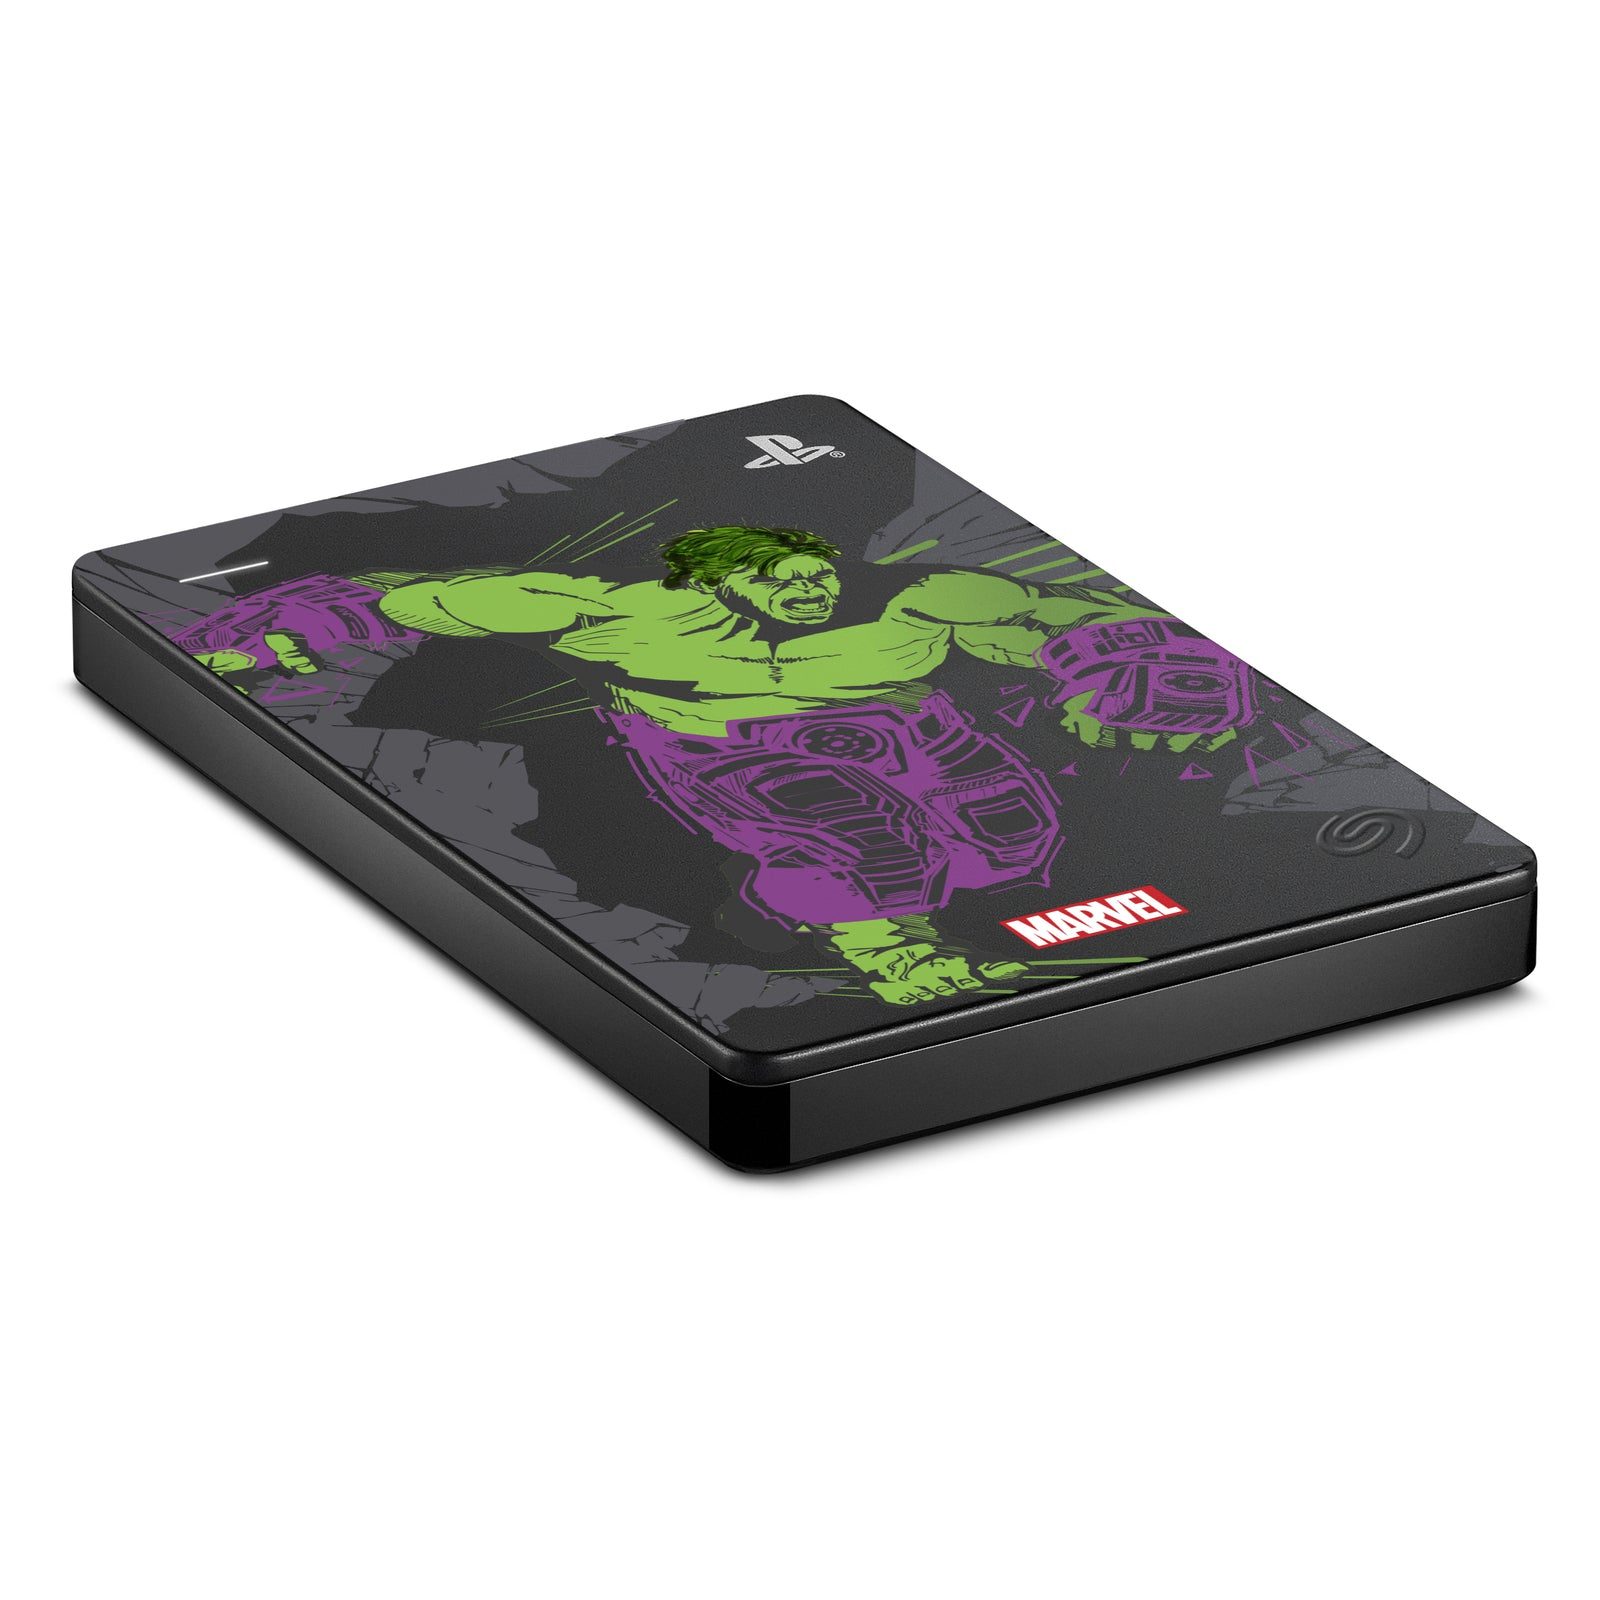 2TB Seagate Marvel's Avengers Game Drive for PlayStation 4 (Hulk)